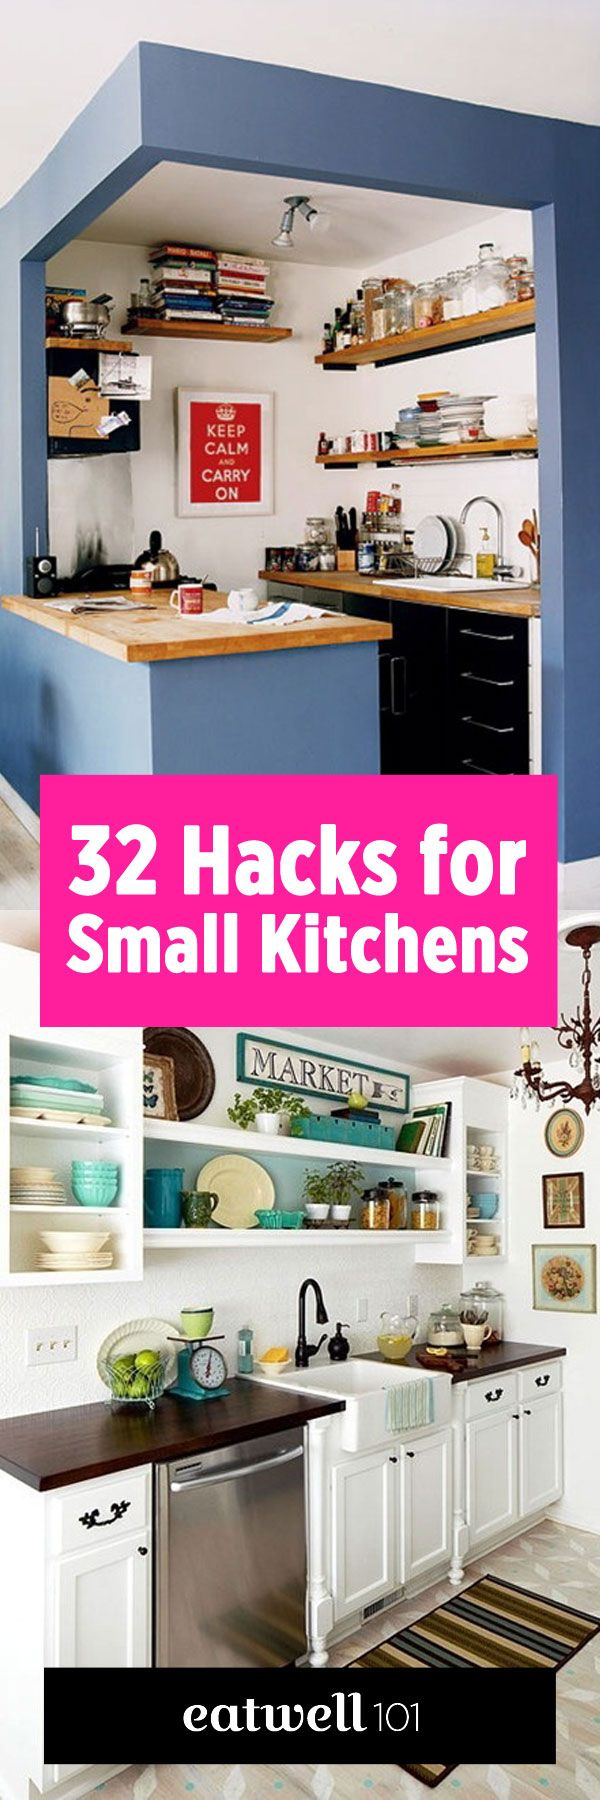 Best 25 Small Kitchen Diy Ideas On Pinterest Small Kitchen Organization Small Kitchen Ideas